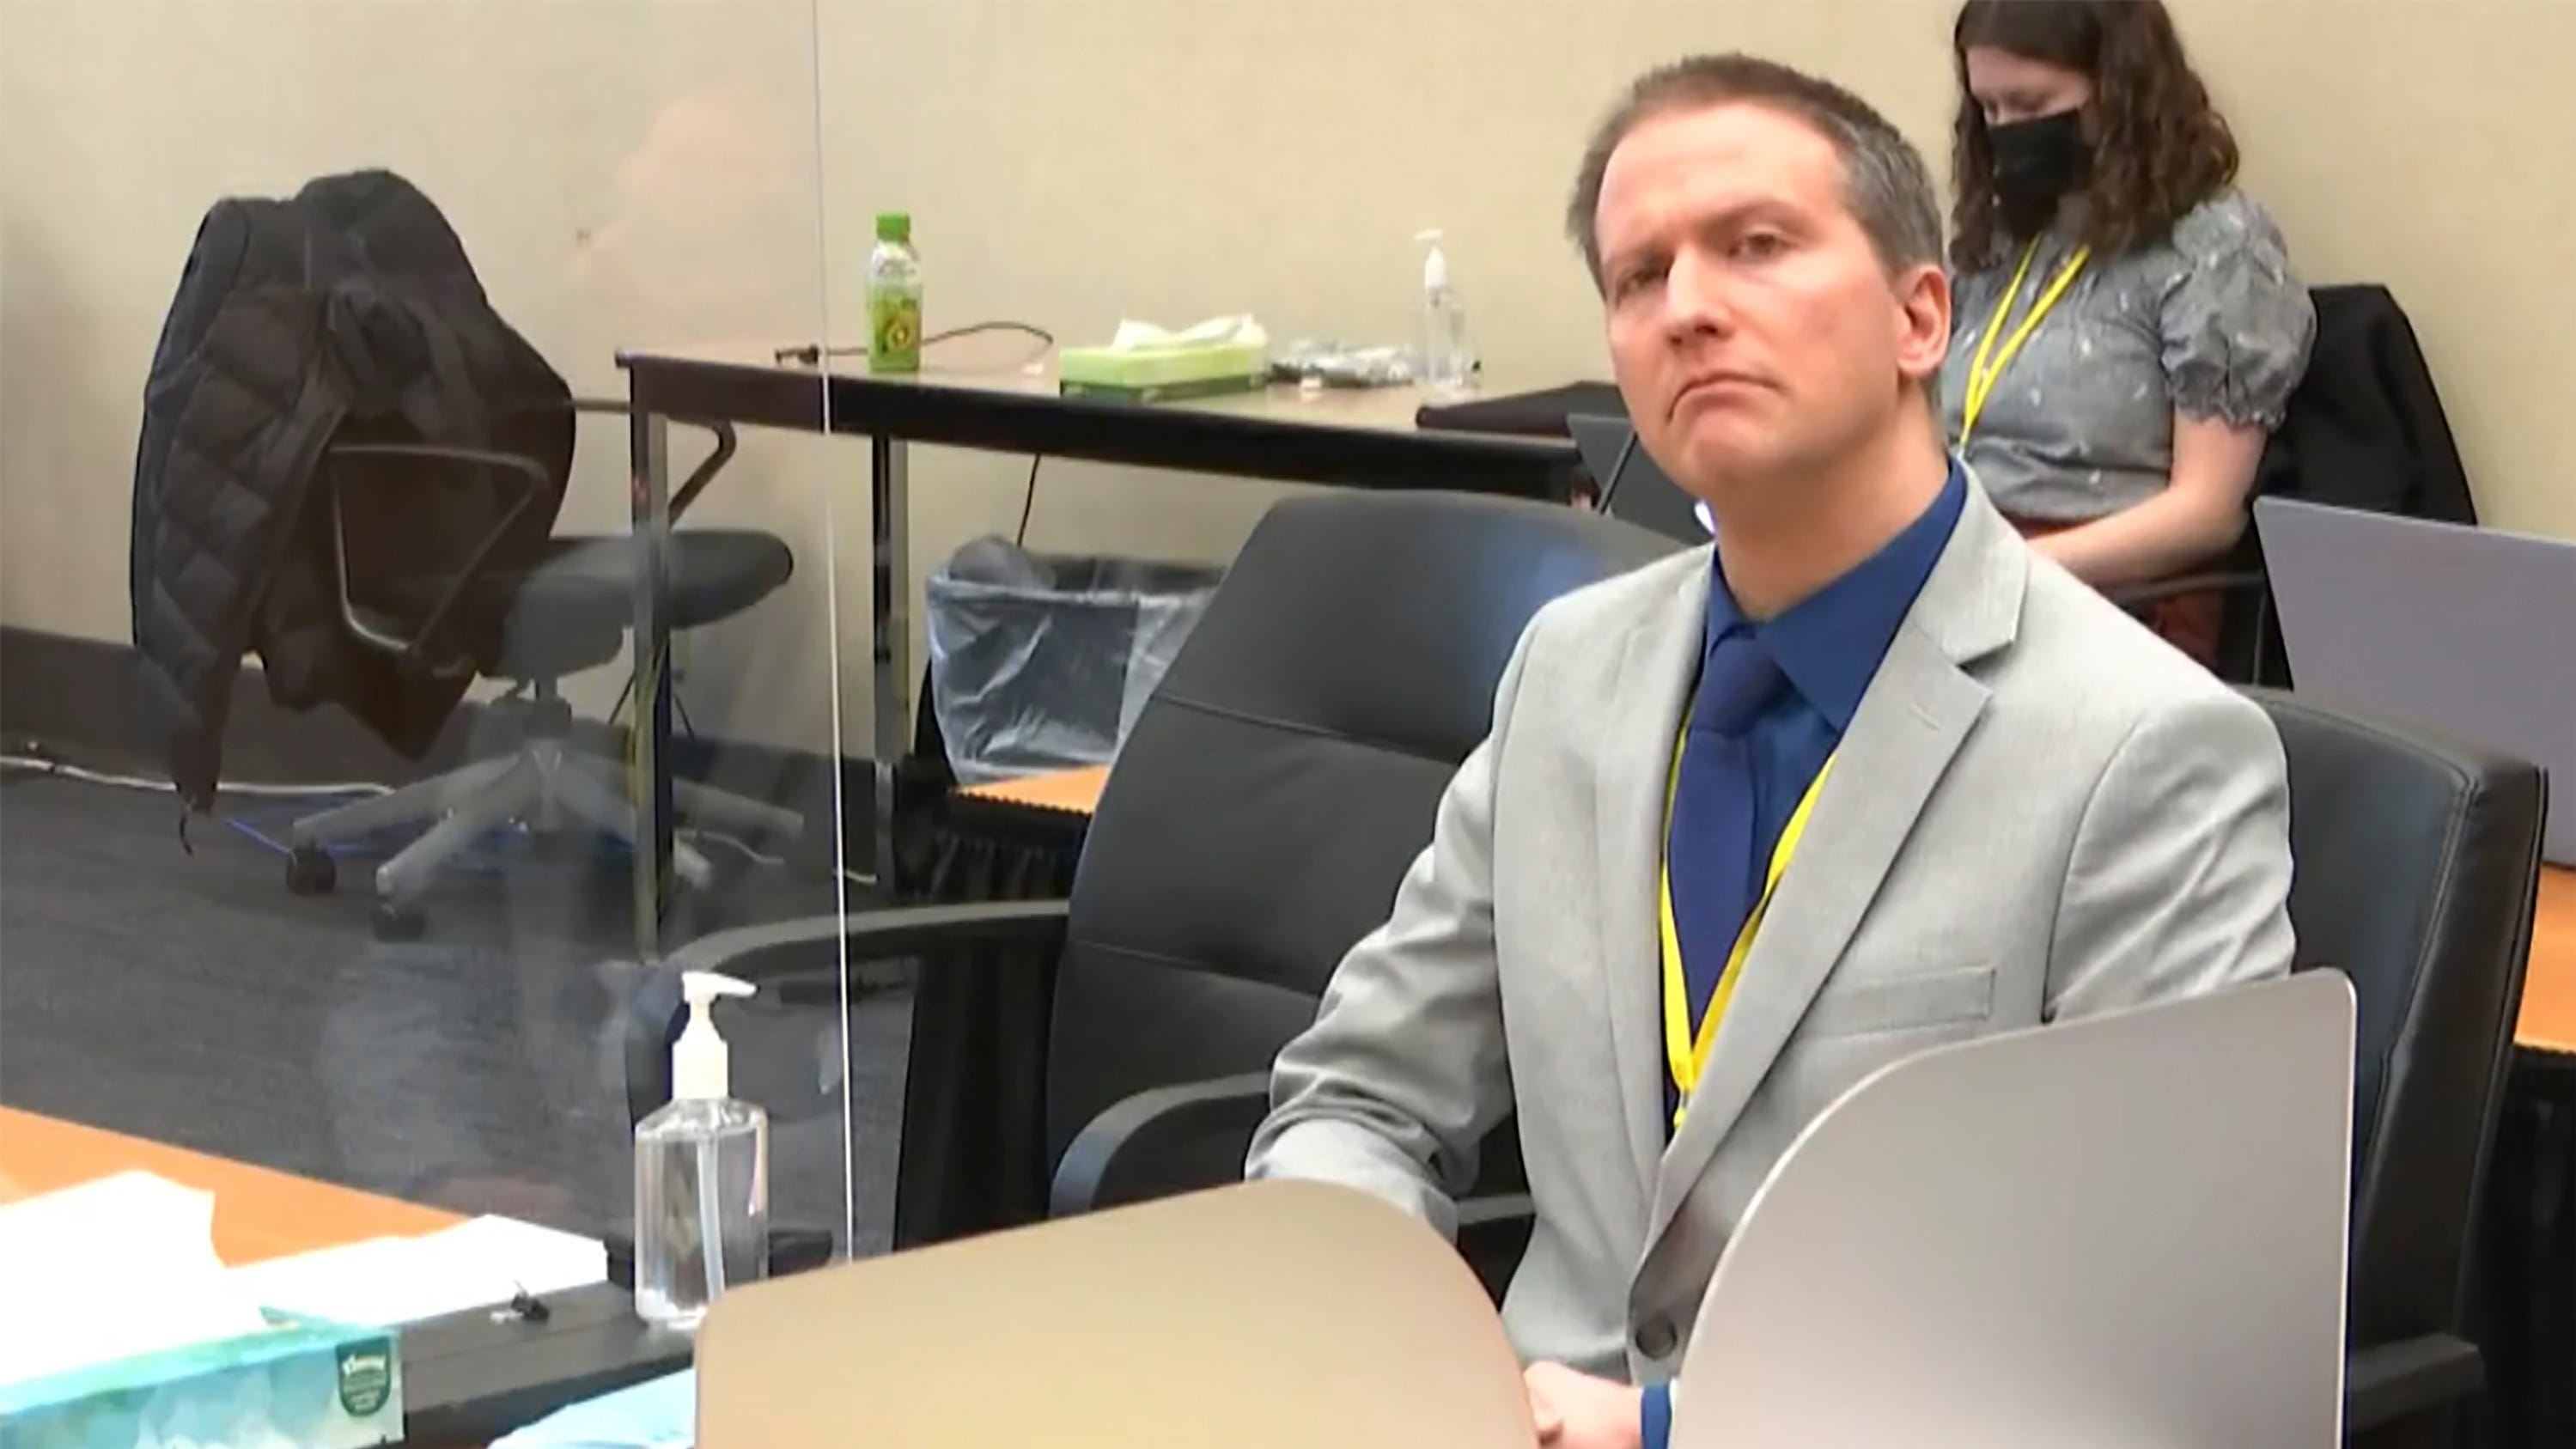 Florida activists relieved Chauvin found guilty